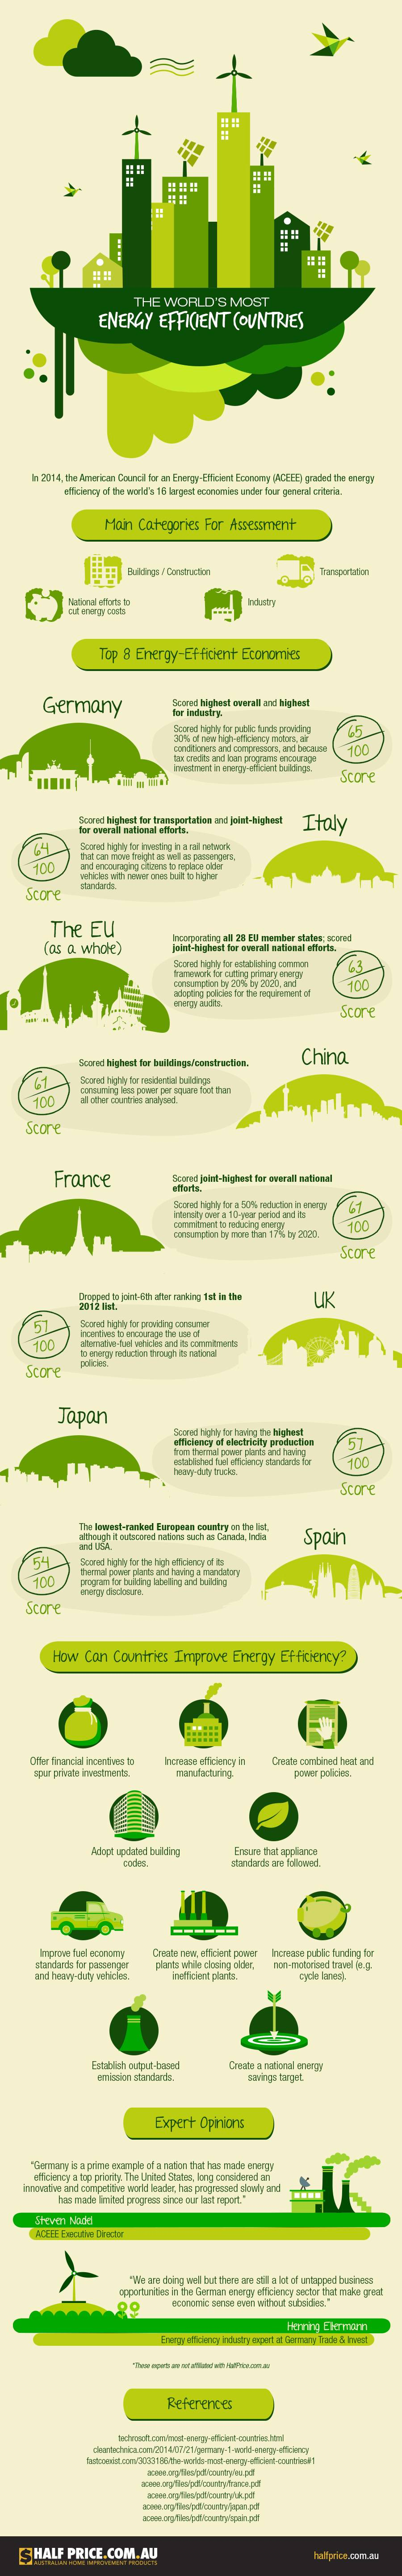 The-World's-Most-Energy-Efficient-Countries-Infographic